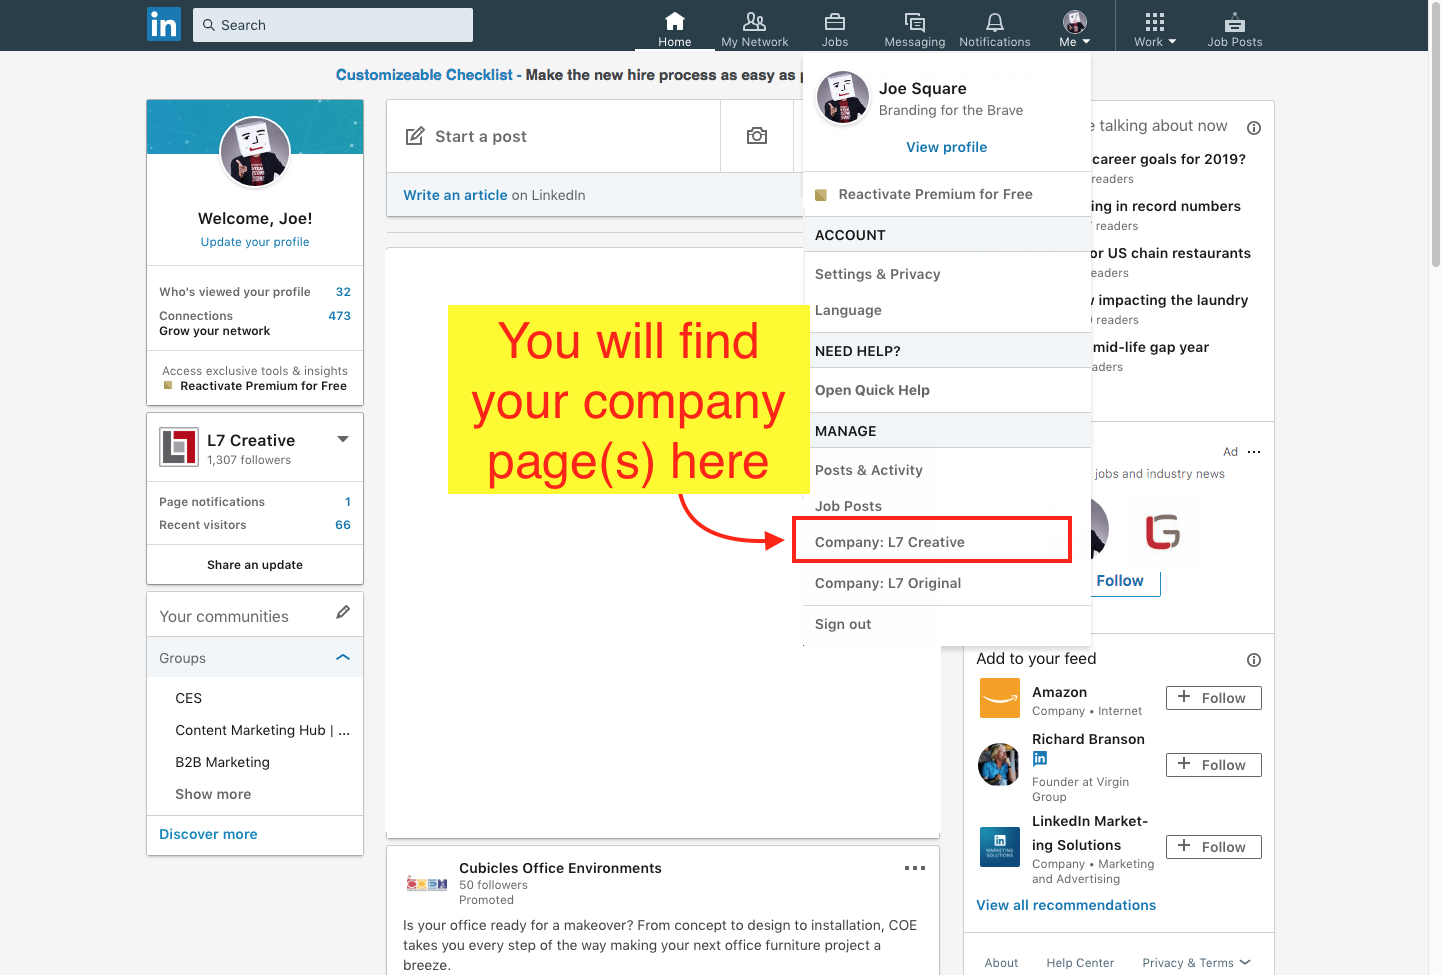 How to Find an Existing LinkedIn Company Page - Step 3 Screenshot